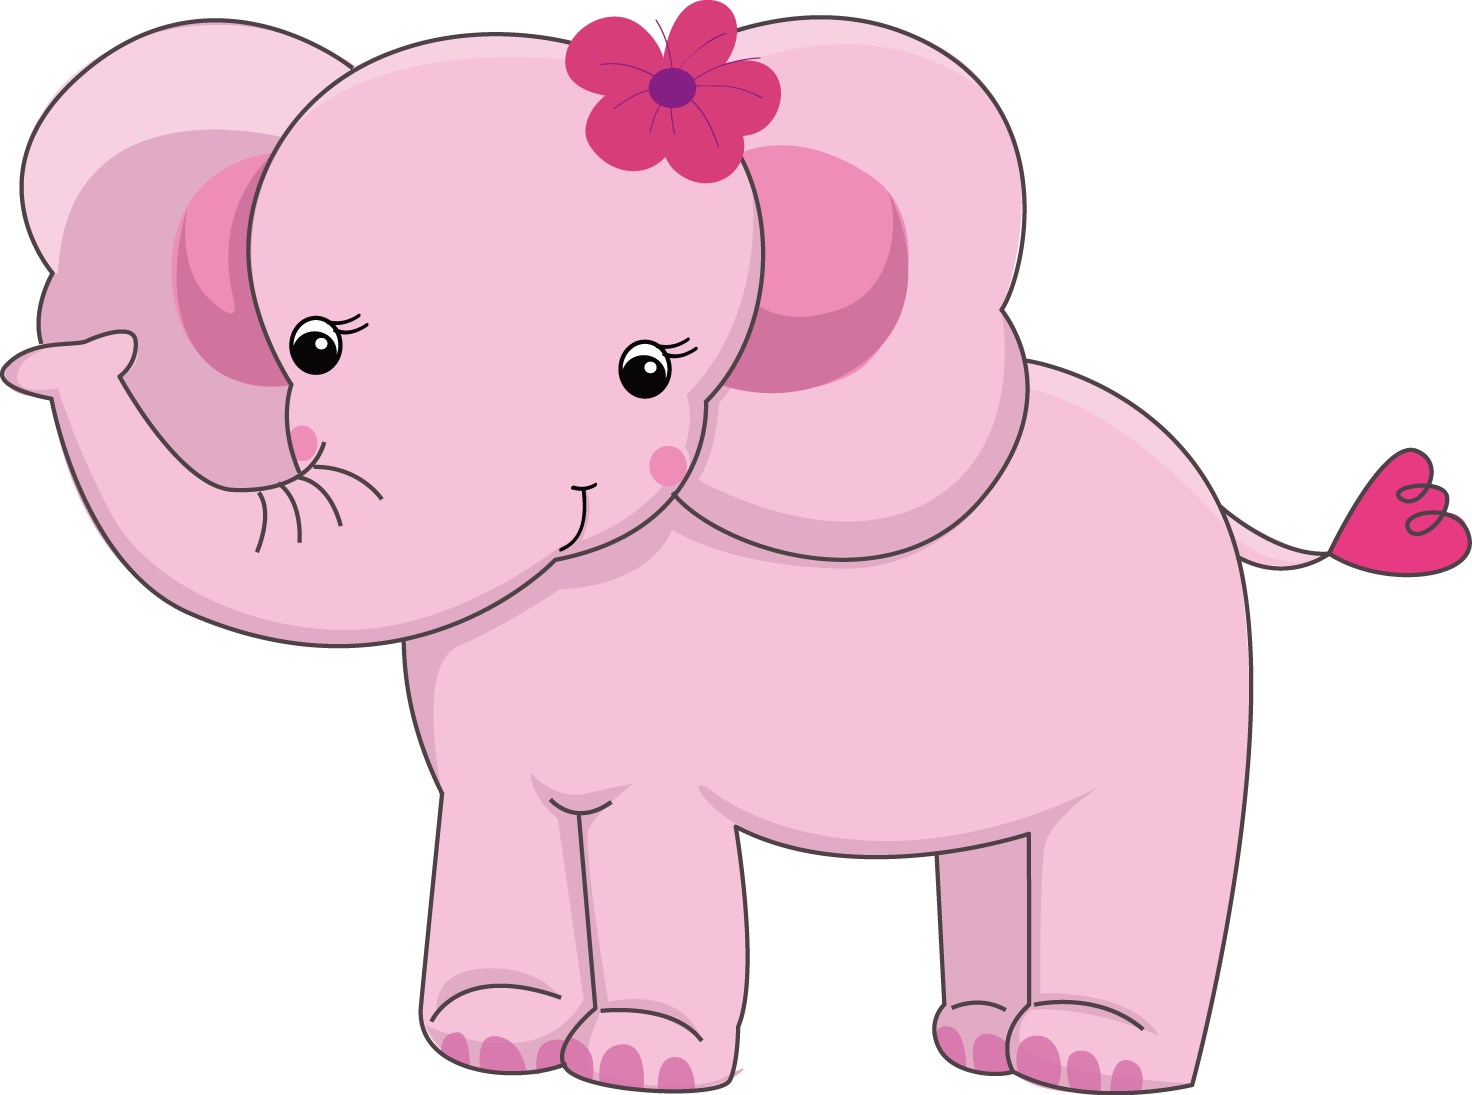 Pretty Pink Girly Jungle Animals 02 Png Elephant Baby Showers Baby Elephant Jungle Animals Download icons in all formats or edit them for your designs. pinterest